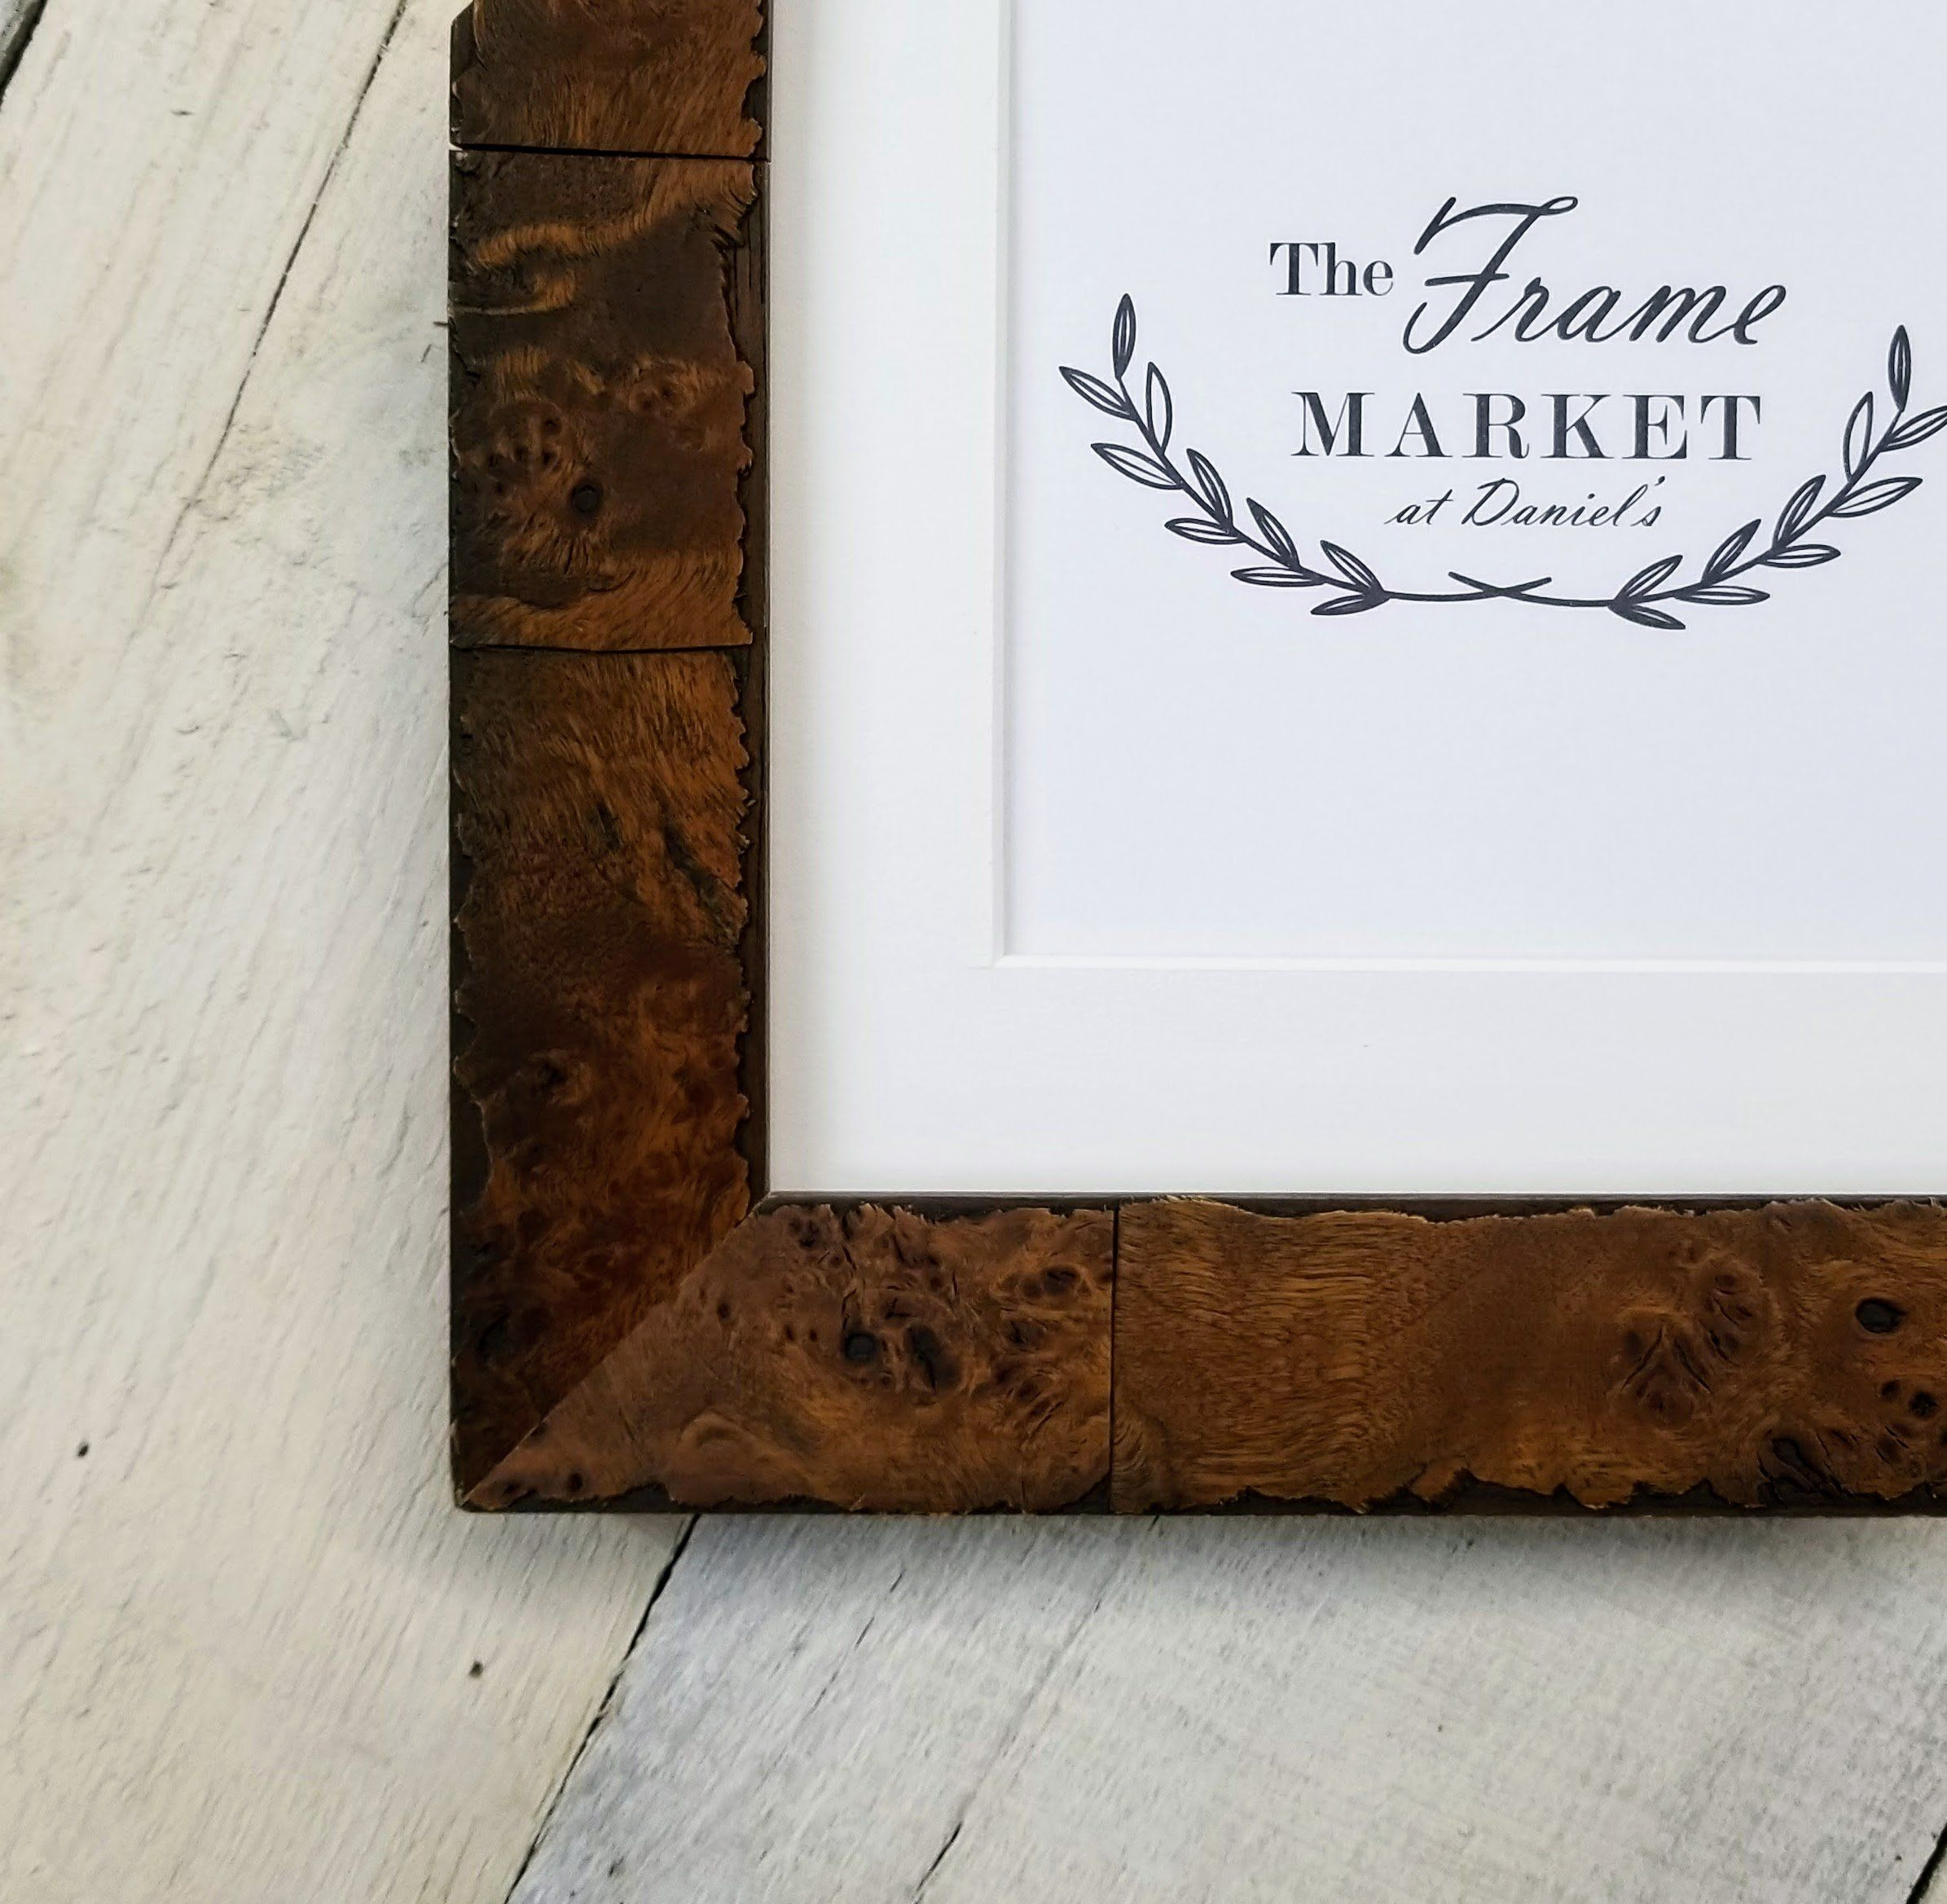 Burl Wood Picture Frame 8x10, 9x12, 11x14, 14x16, 16x20 Standard and ...